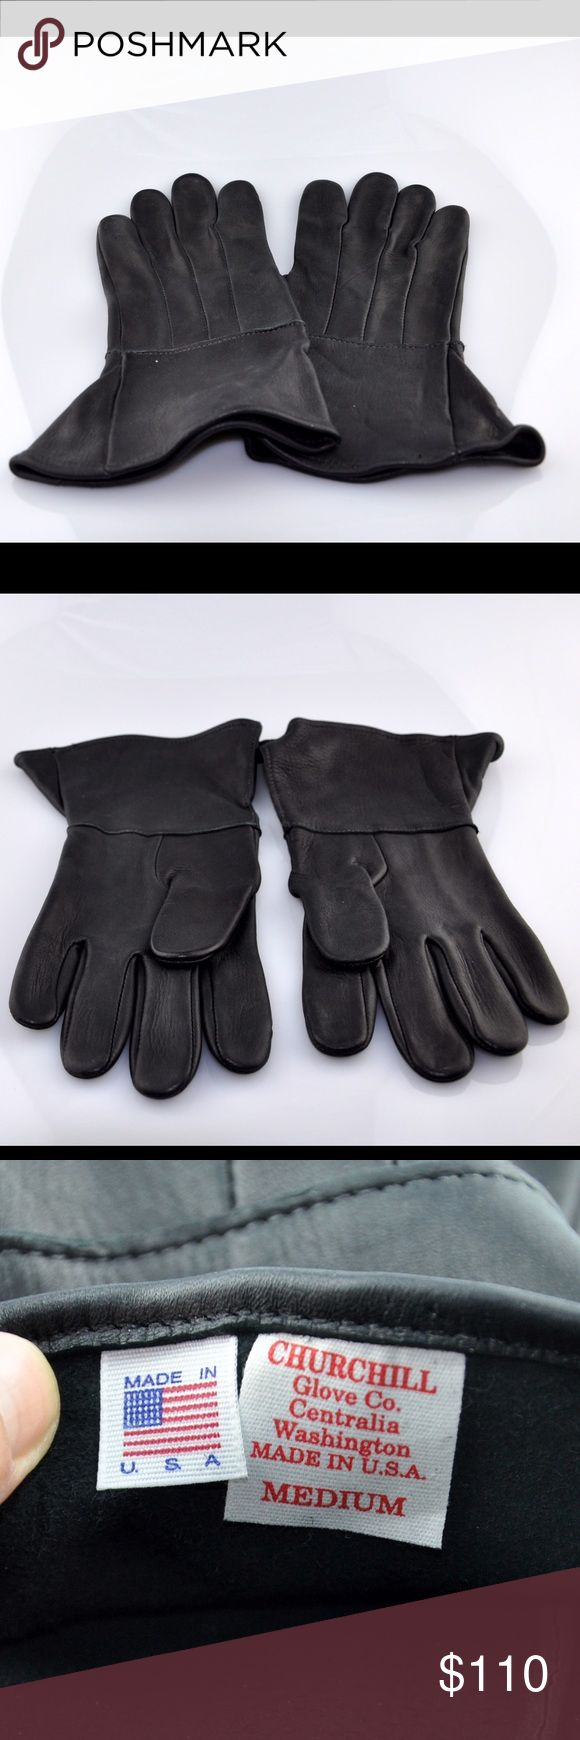 Diavolo leather motorcycle gloves - Men S Churchill Glove Co Leather Motorcycle Gloves